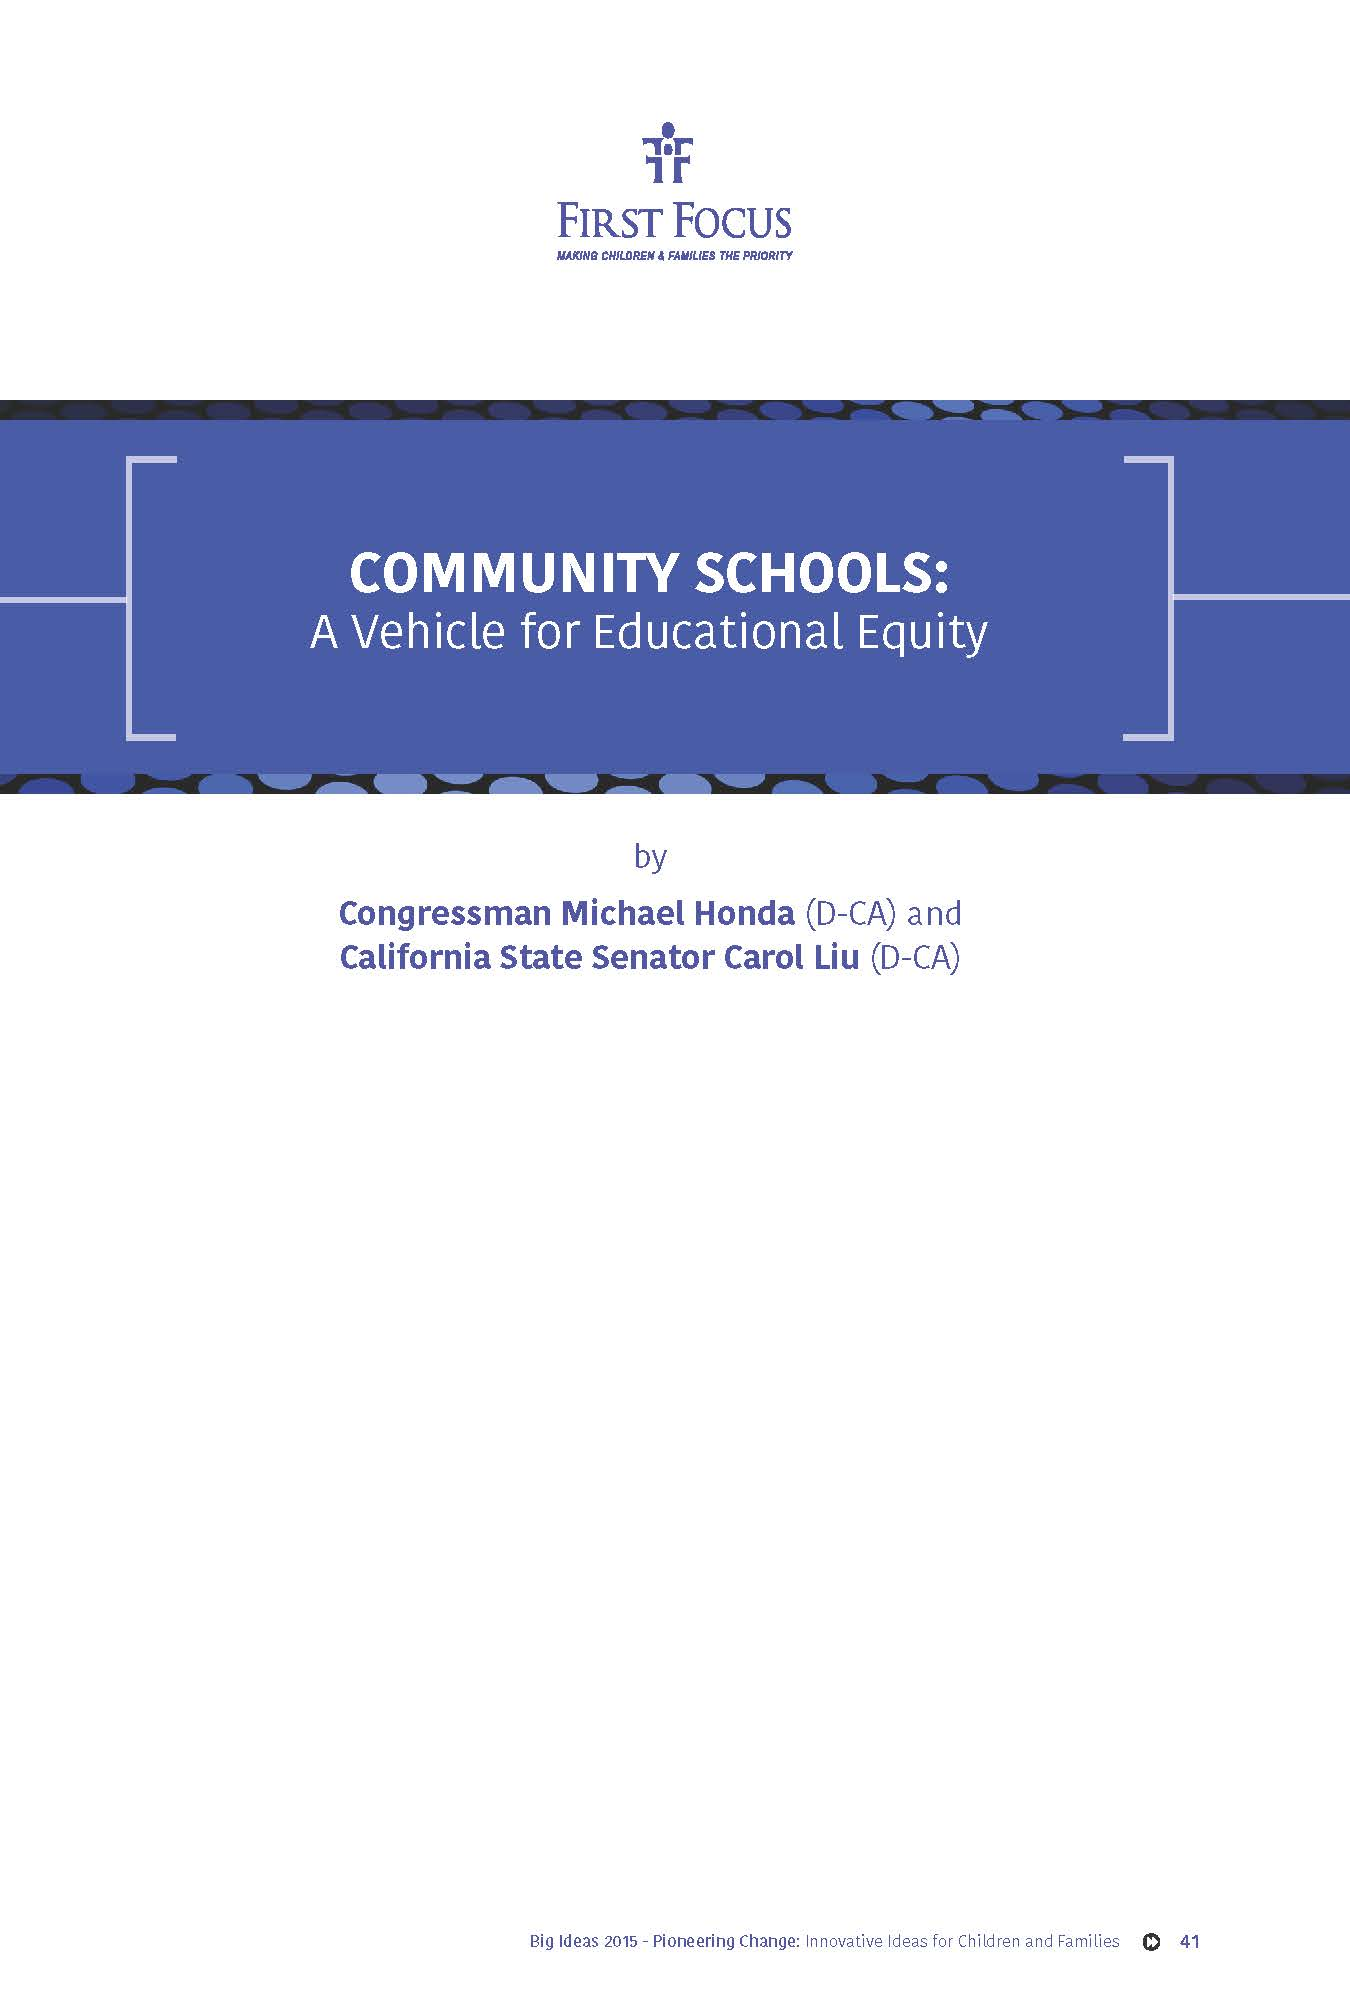 Community Schools: A Vehicle for Educational Equality